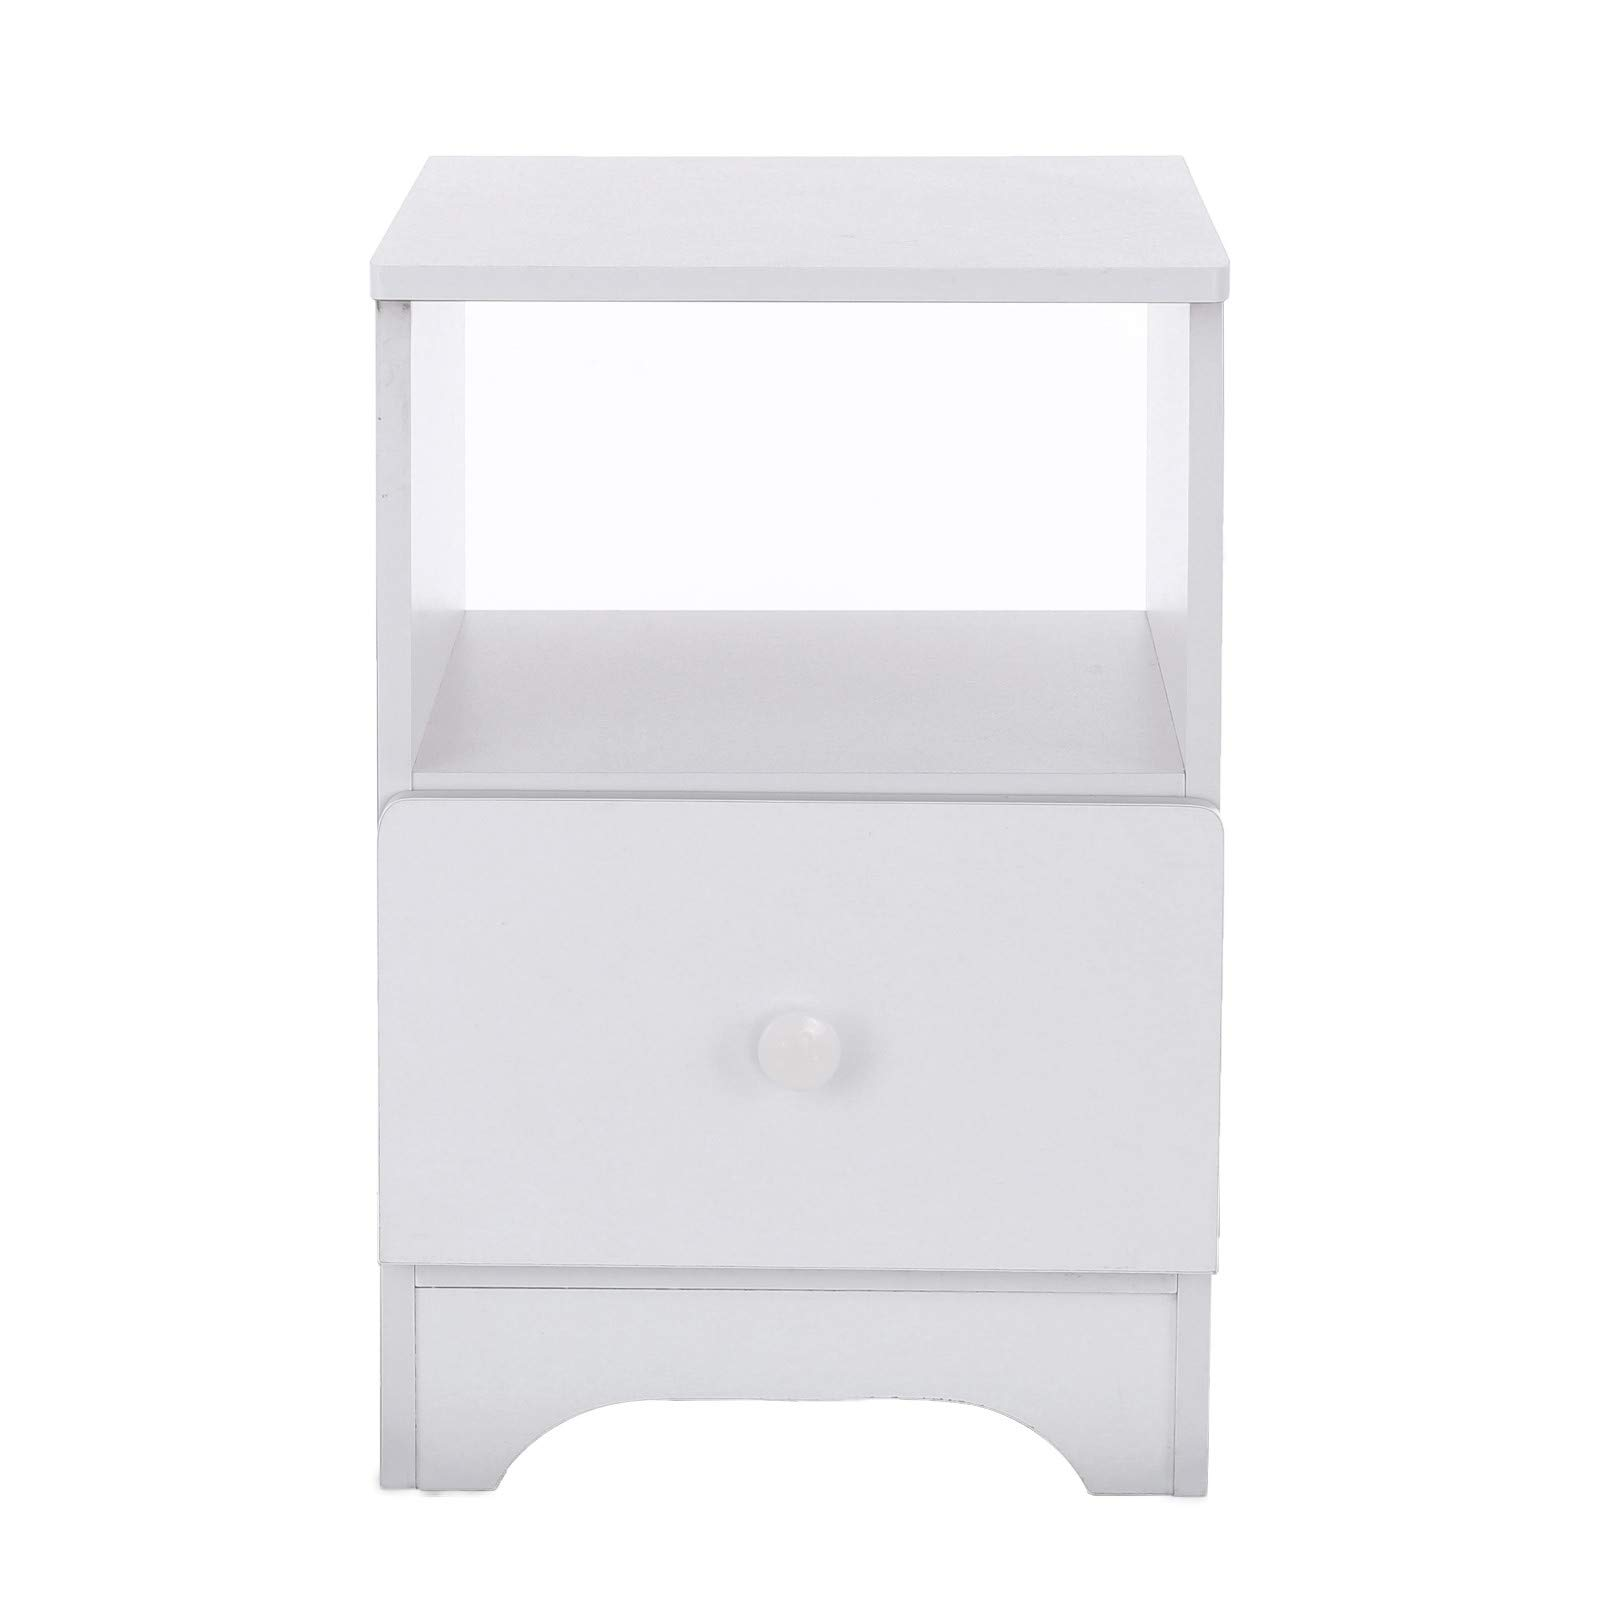 Fullwei Bedside with Double Drawer,Assemble Storage Cabinet Bedroom Nightstand Locker Solid Wood Living Room Furniture - Delivered Within 7 Days (White)